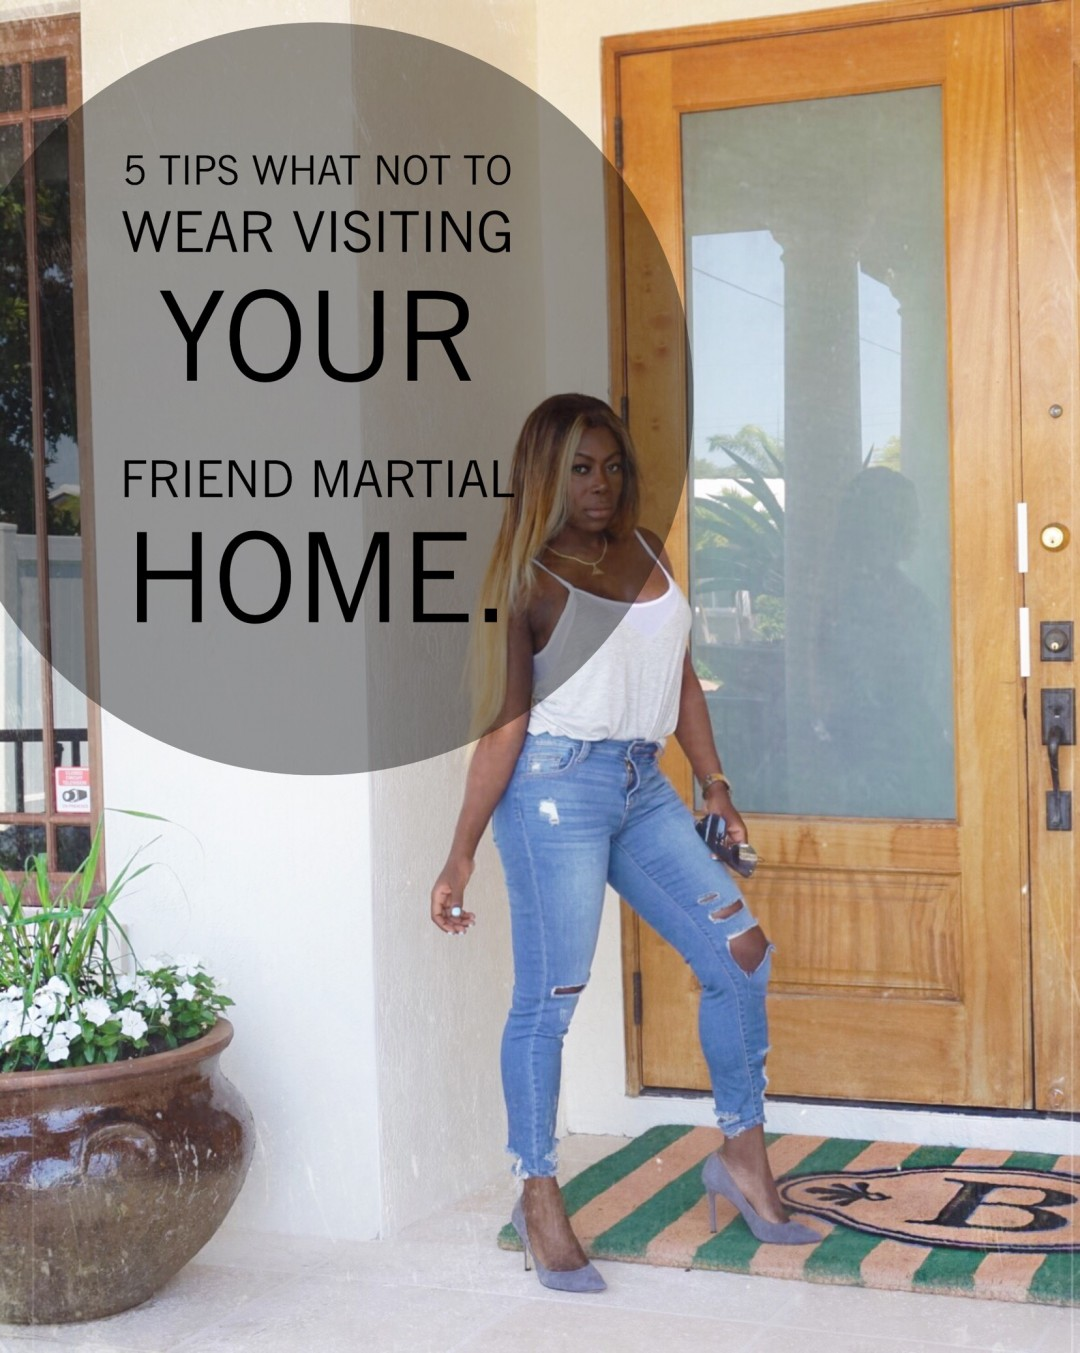 5 tips visting your friend martial home